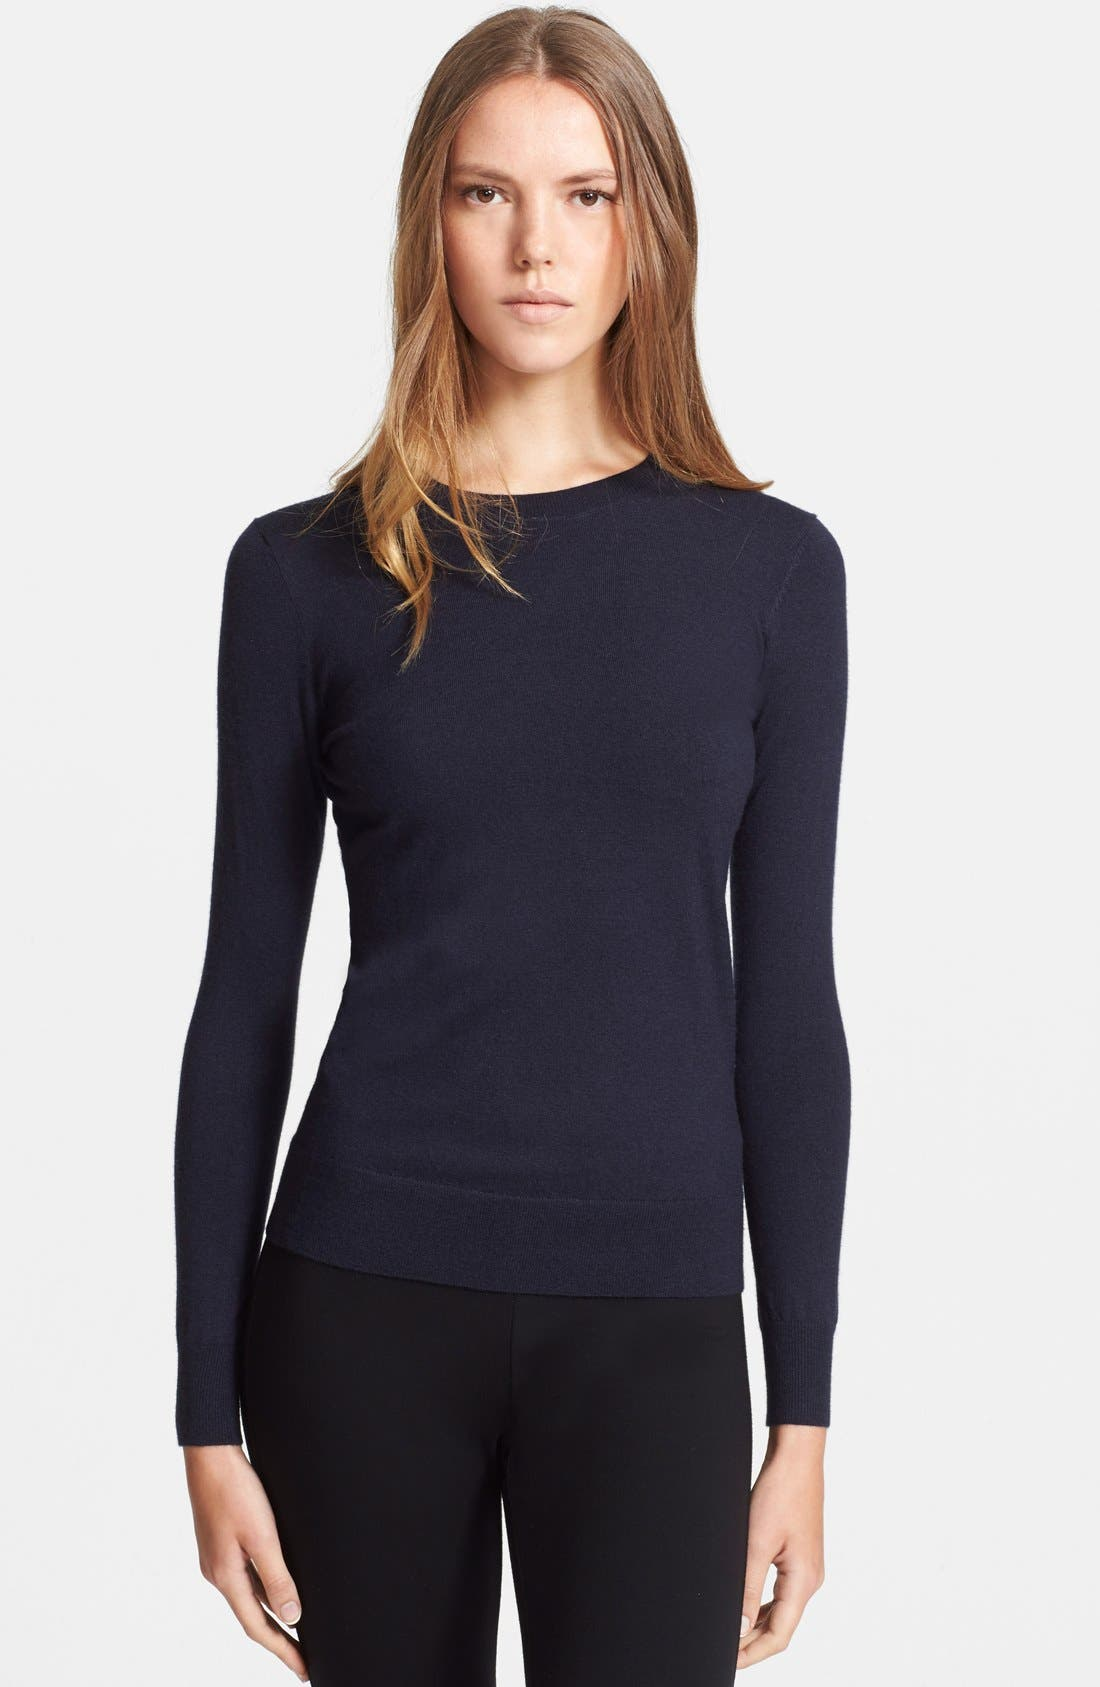 Main Image - Theory 'Perfect' Cashmere Blend Crewneck Sweater